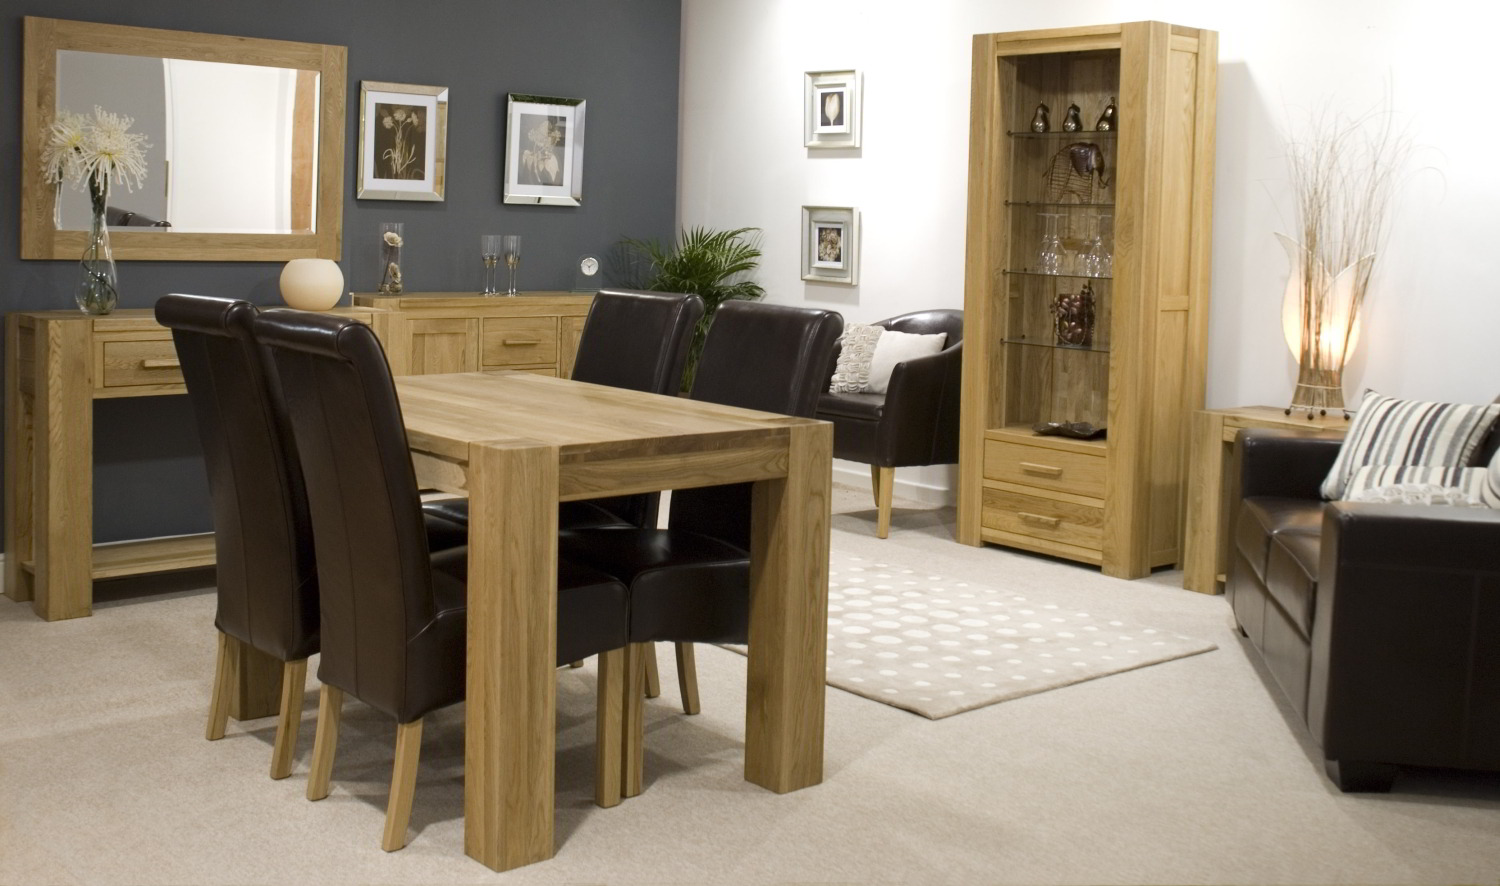 The Range Living Room Furniture Pemberton Solid Oak Office Furniture Tall Bookcase With Glass Shelves